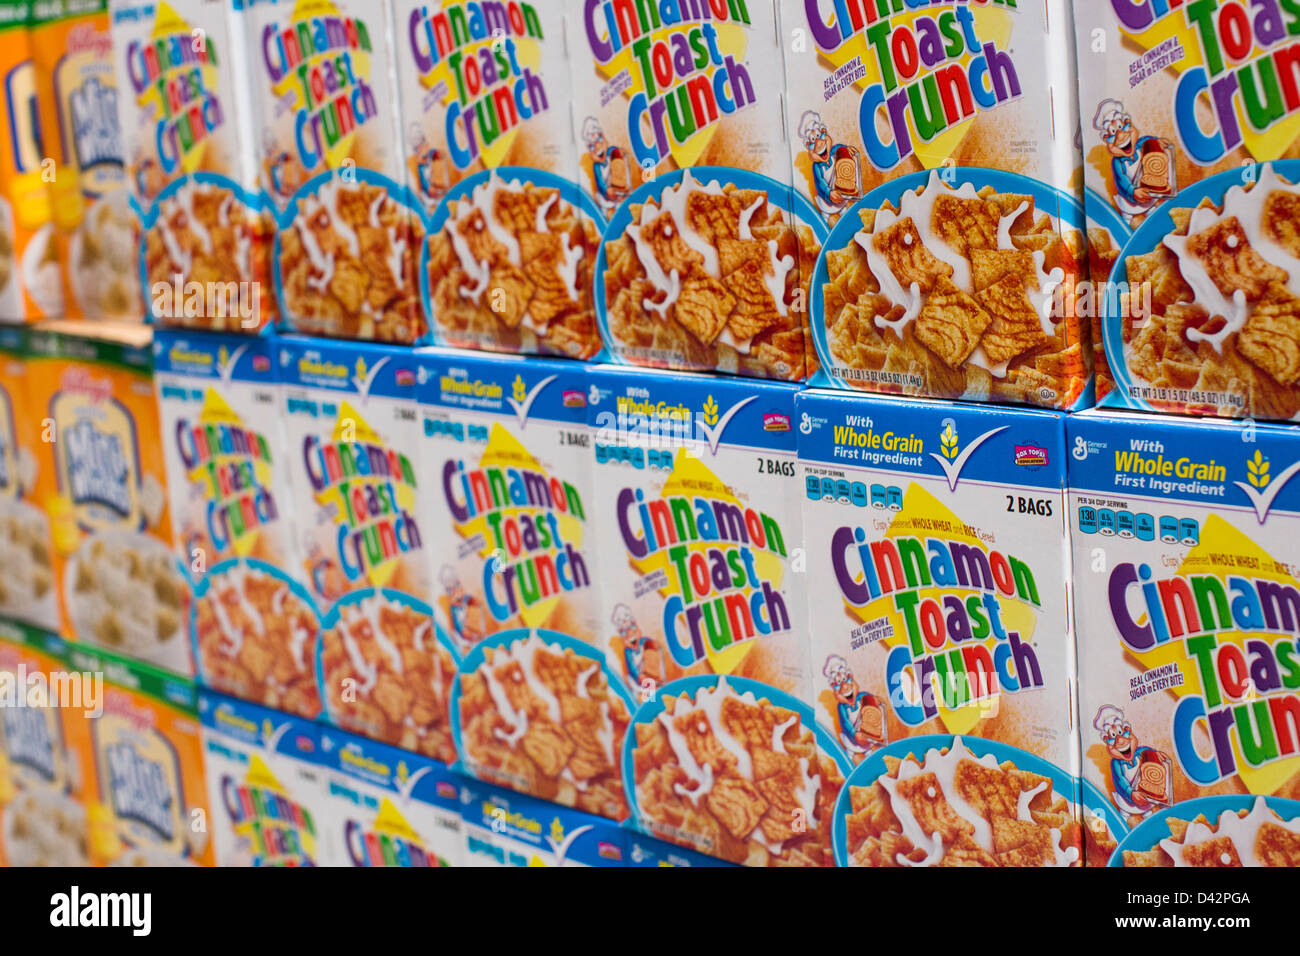 General Mills Cinnamon Toast Crunch cereal on display at a Costco Wholesale Warehouse Club. - Stock Image